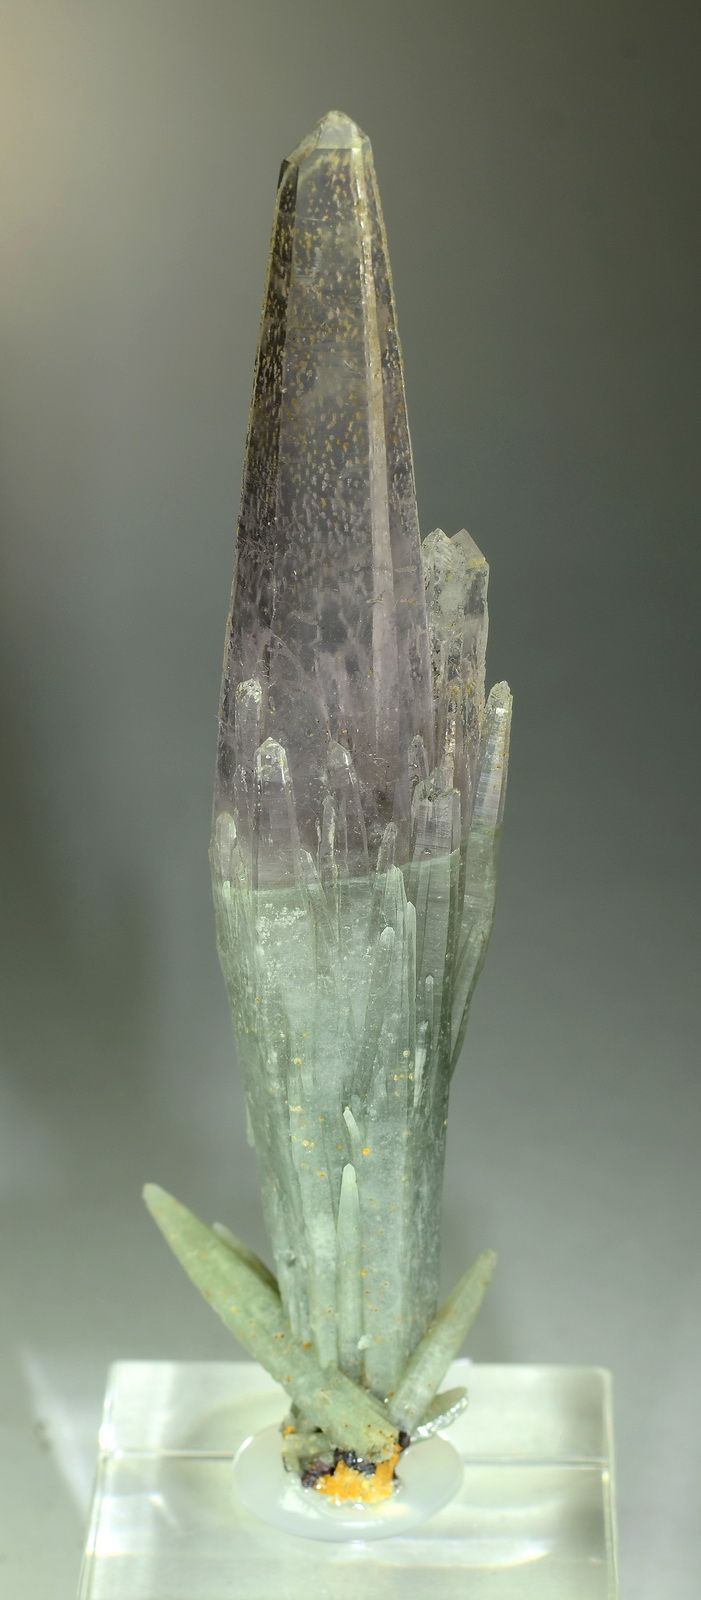 Quartz var.Amethyst and Prase - Serifos Island, Greece Size: 9.4 x 2.6 x 1.8 cm